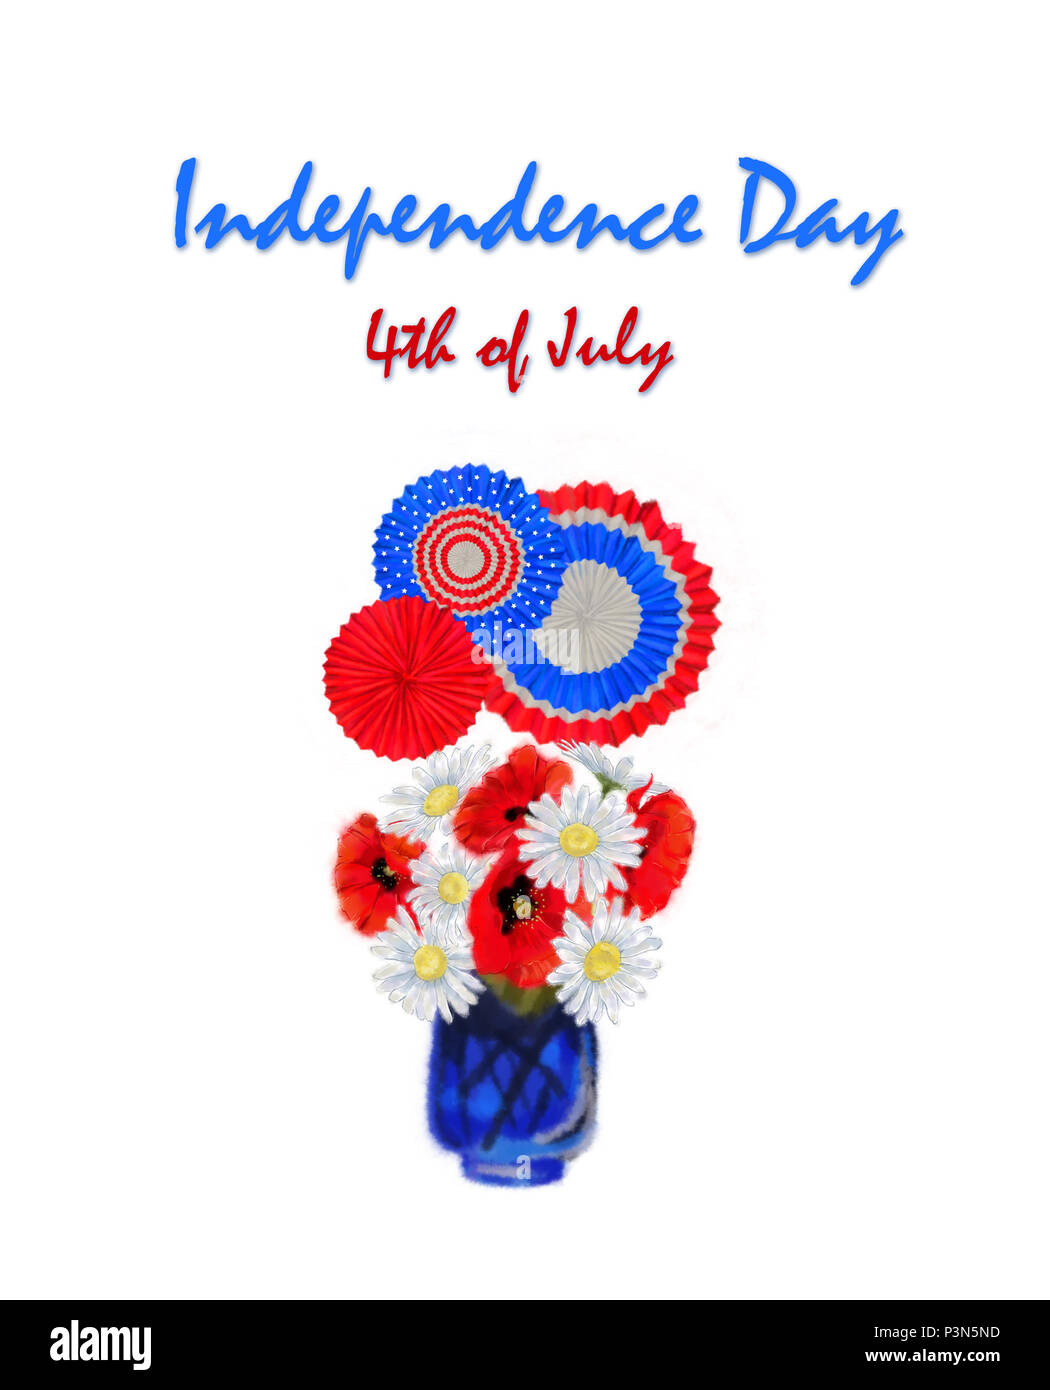 4th of July Floral Arrangement with Patriotic Color Cockades and Stars. Daisy and Poppy Bouquet with Tricolor Decor for Fourth of July Clip Art. - Stock Image